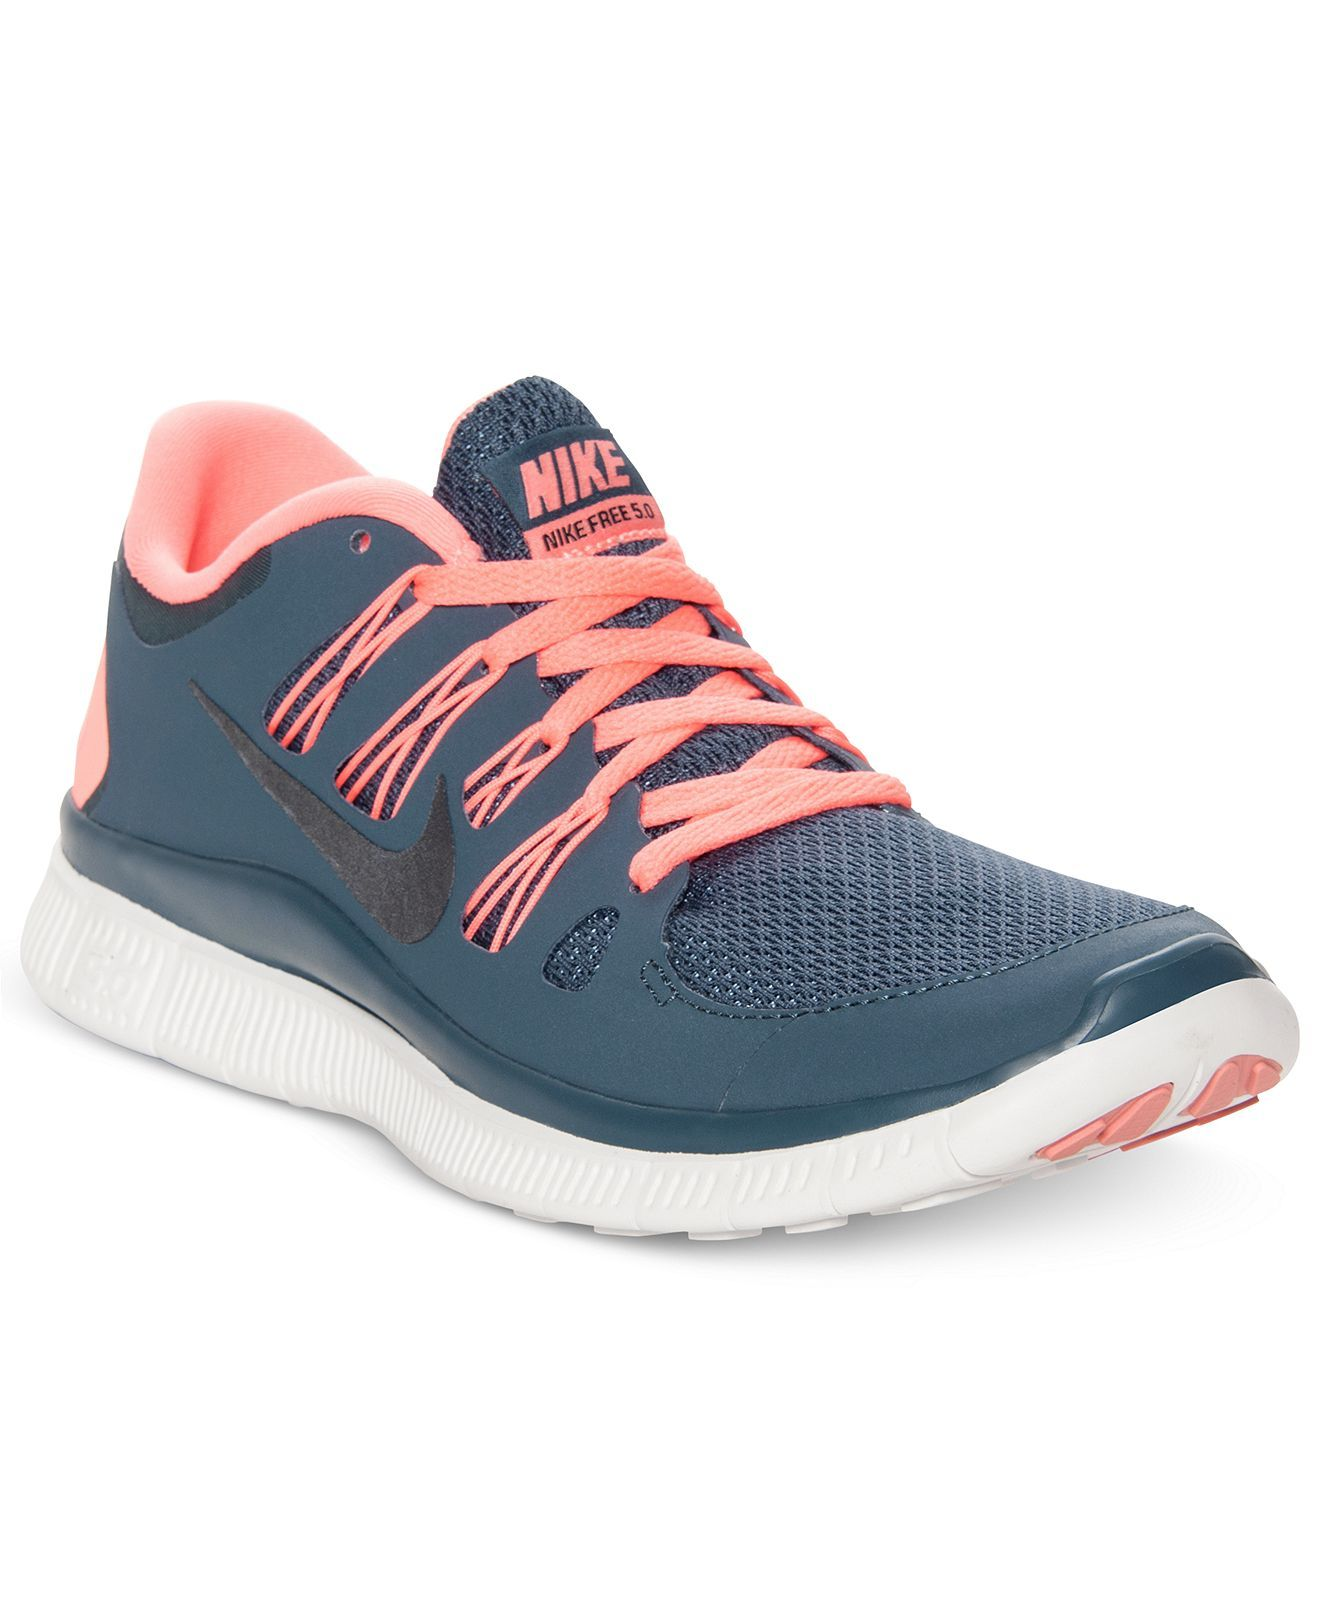 Nike Women's Shoes, Free 5.0+ Running Sneakers - Nike - Shoes - Macy's!